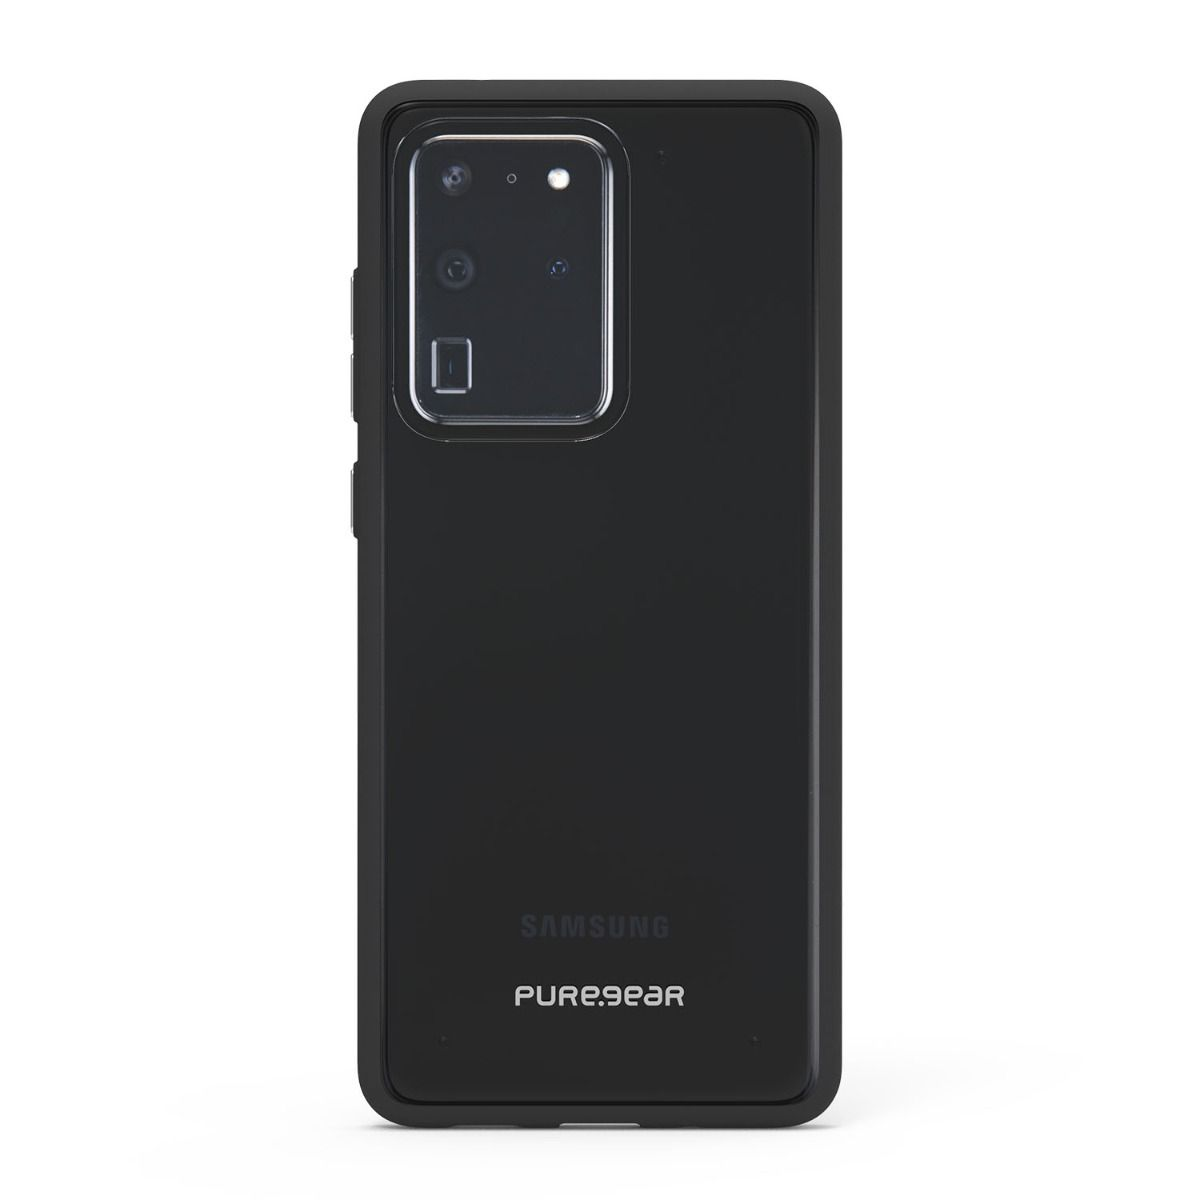 Samsung Galaxy S20 Ultra Slim Shell Cell Phone Case - Clear/Black